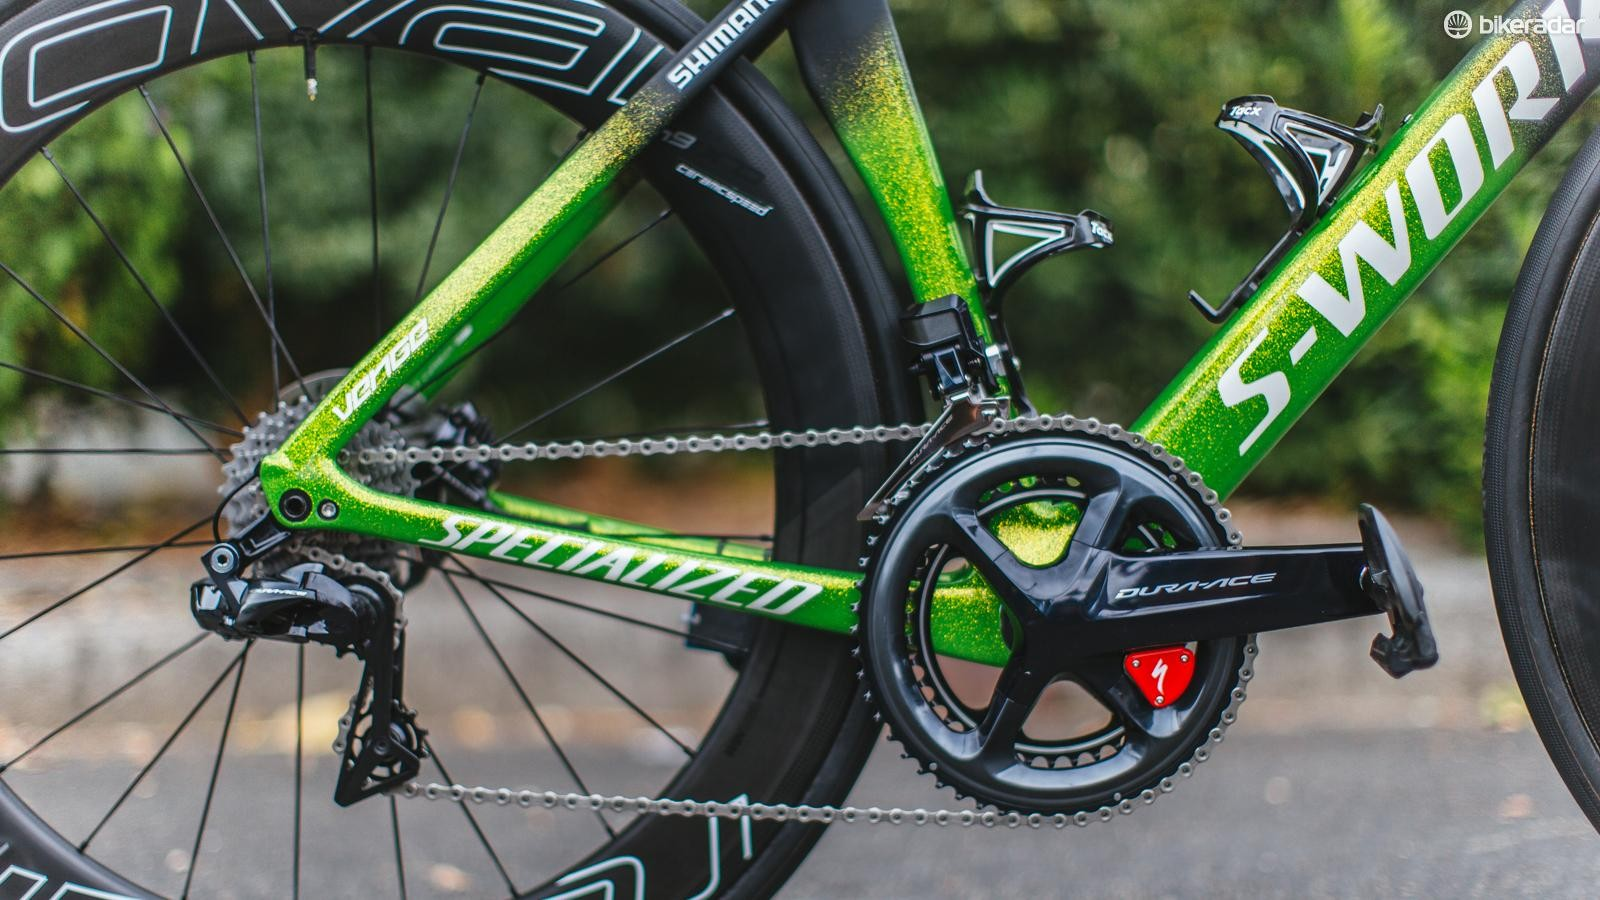 A look at Peter Sagan's drivetrain